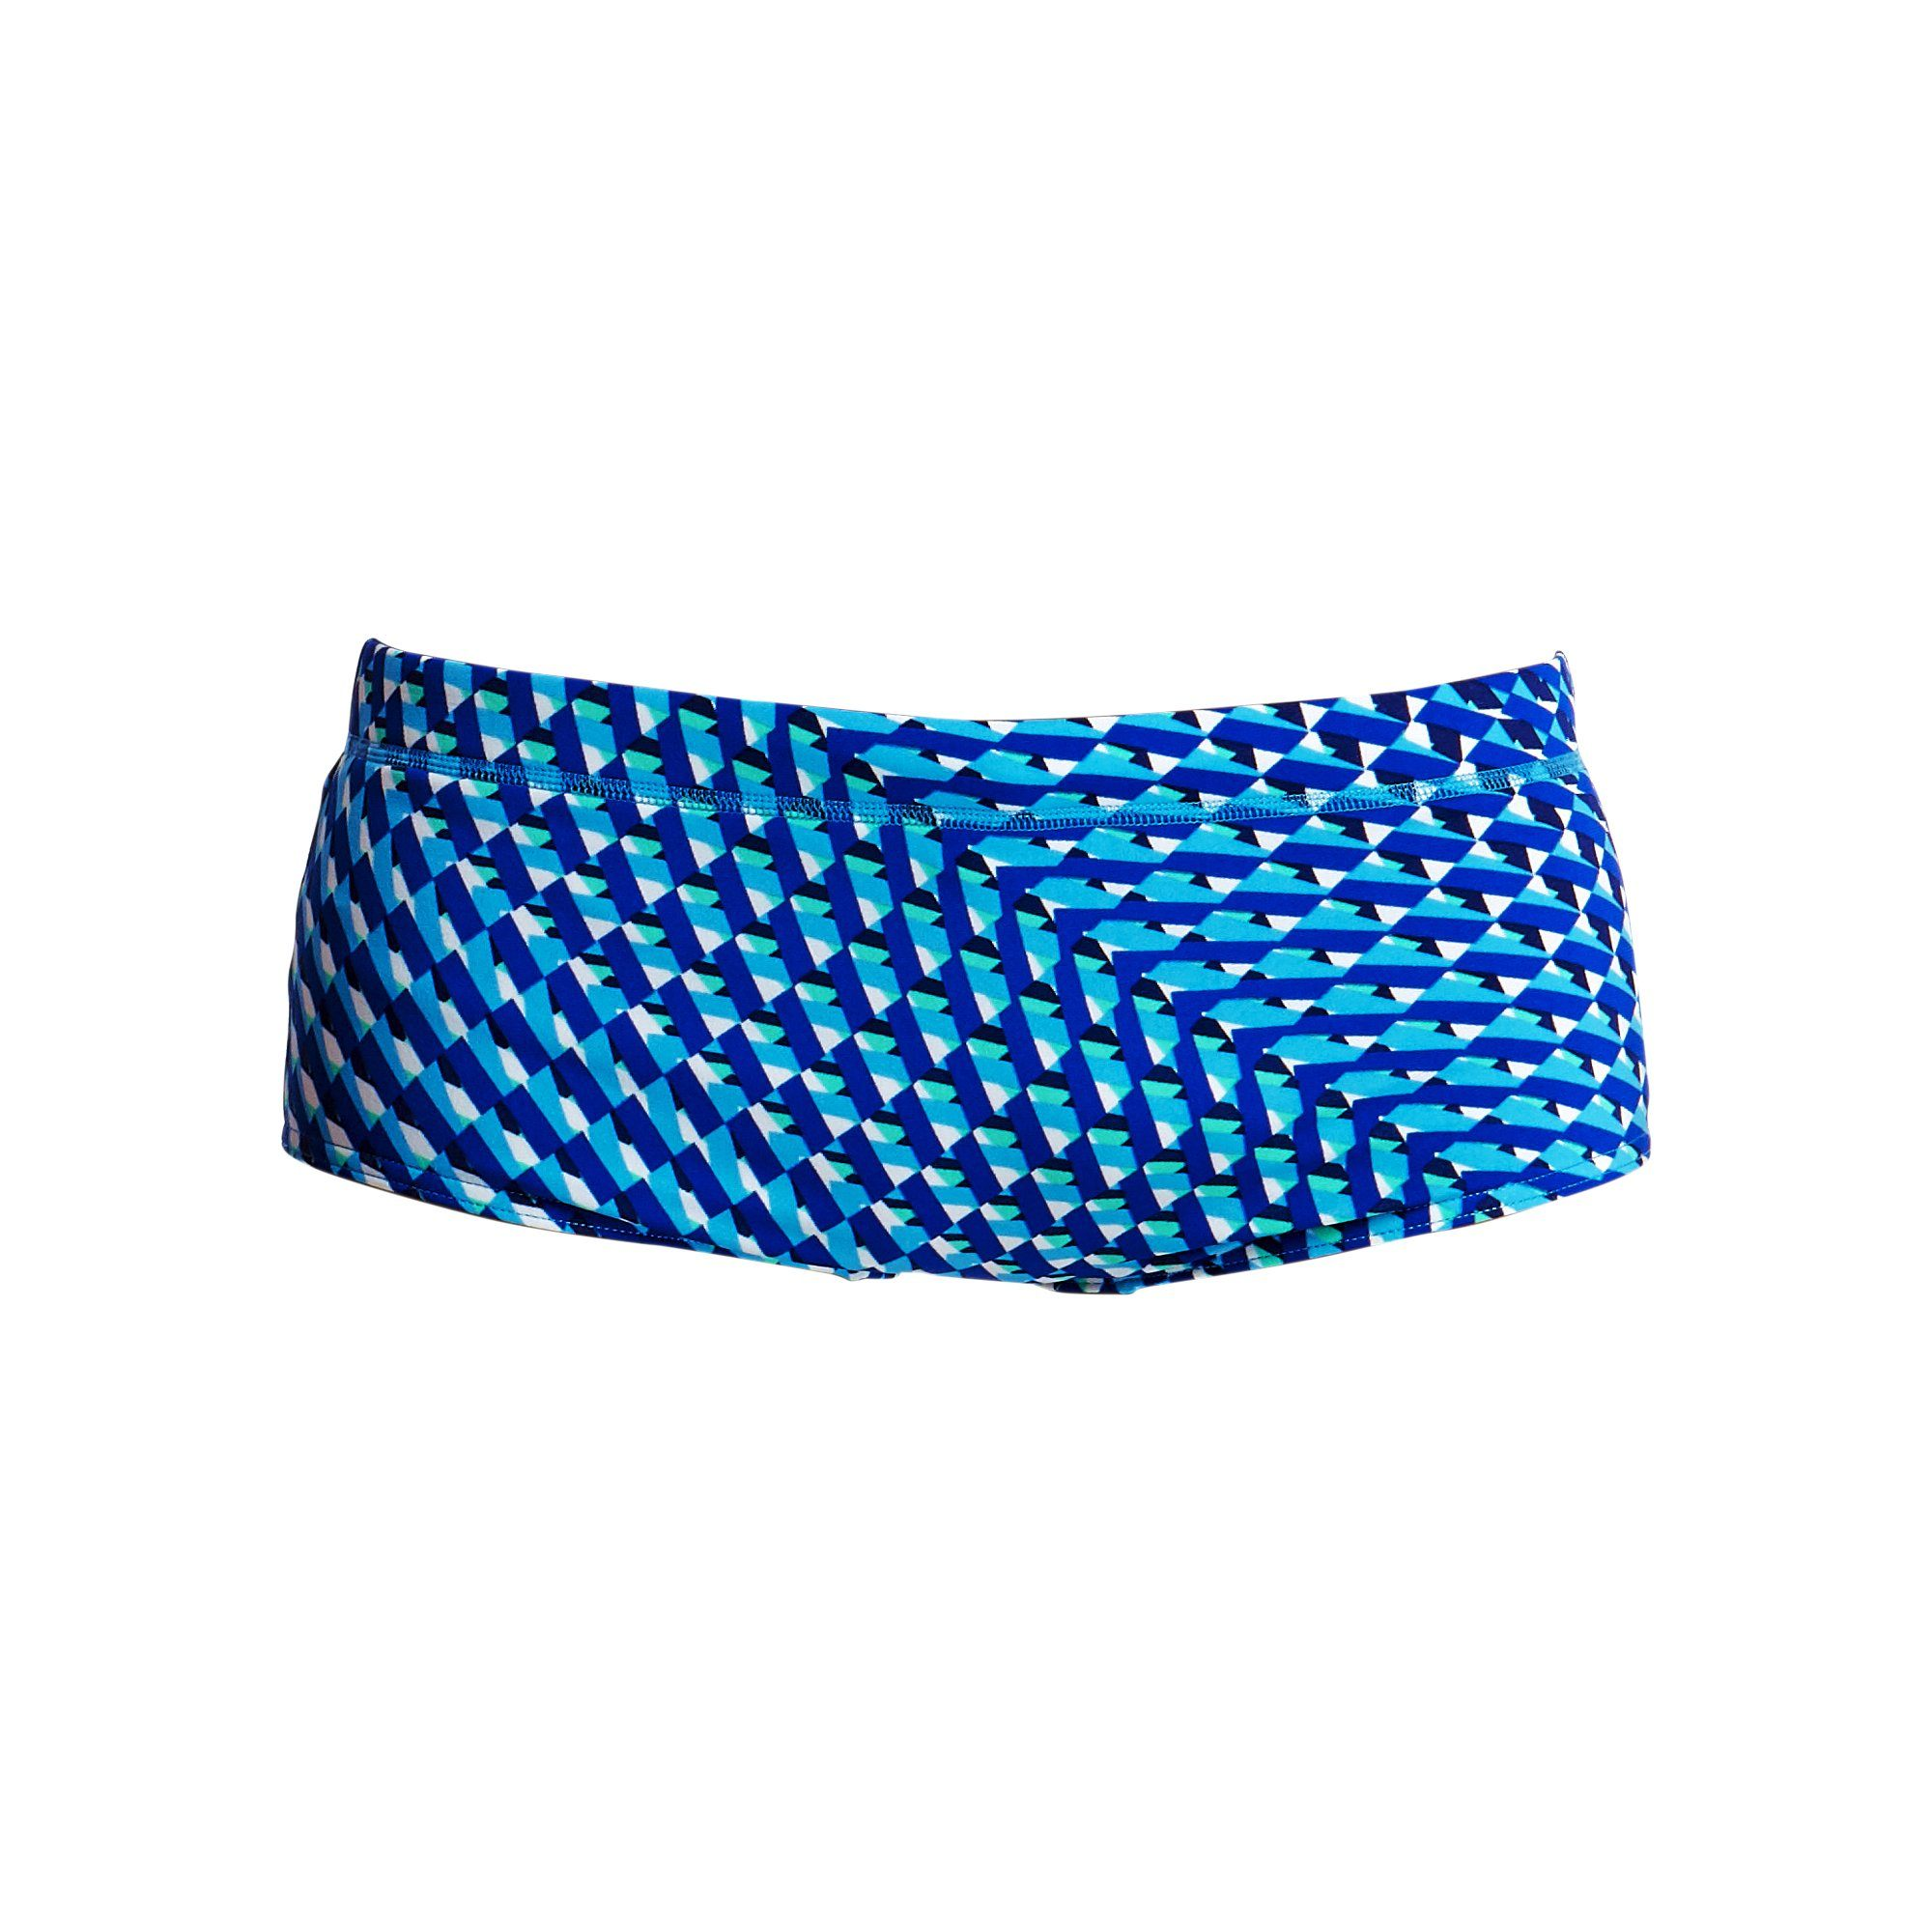 Vapour Scale Classic Trunks BOYS SWIMWEAR FUNKY TRUNKS